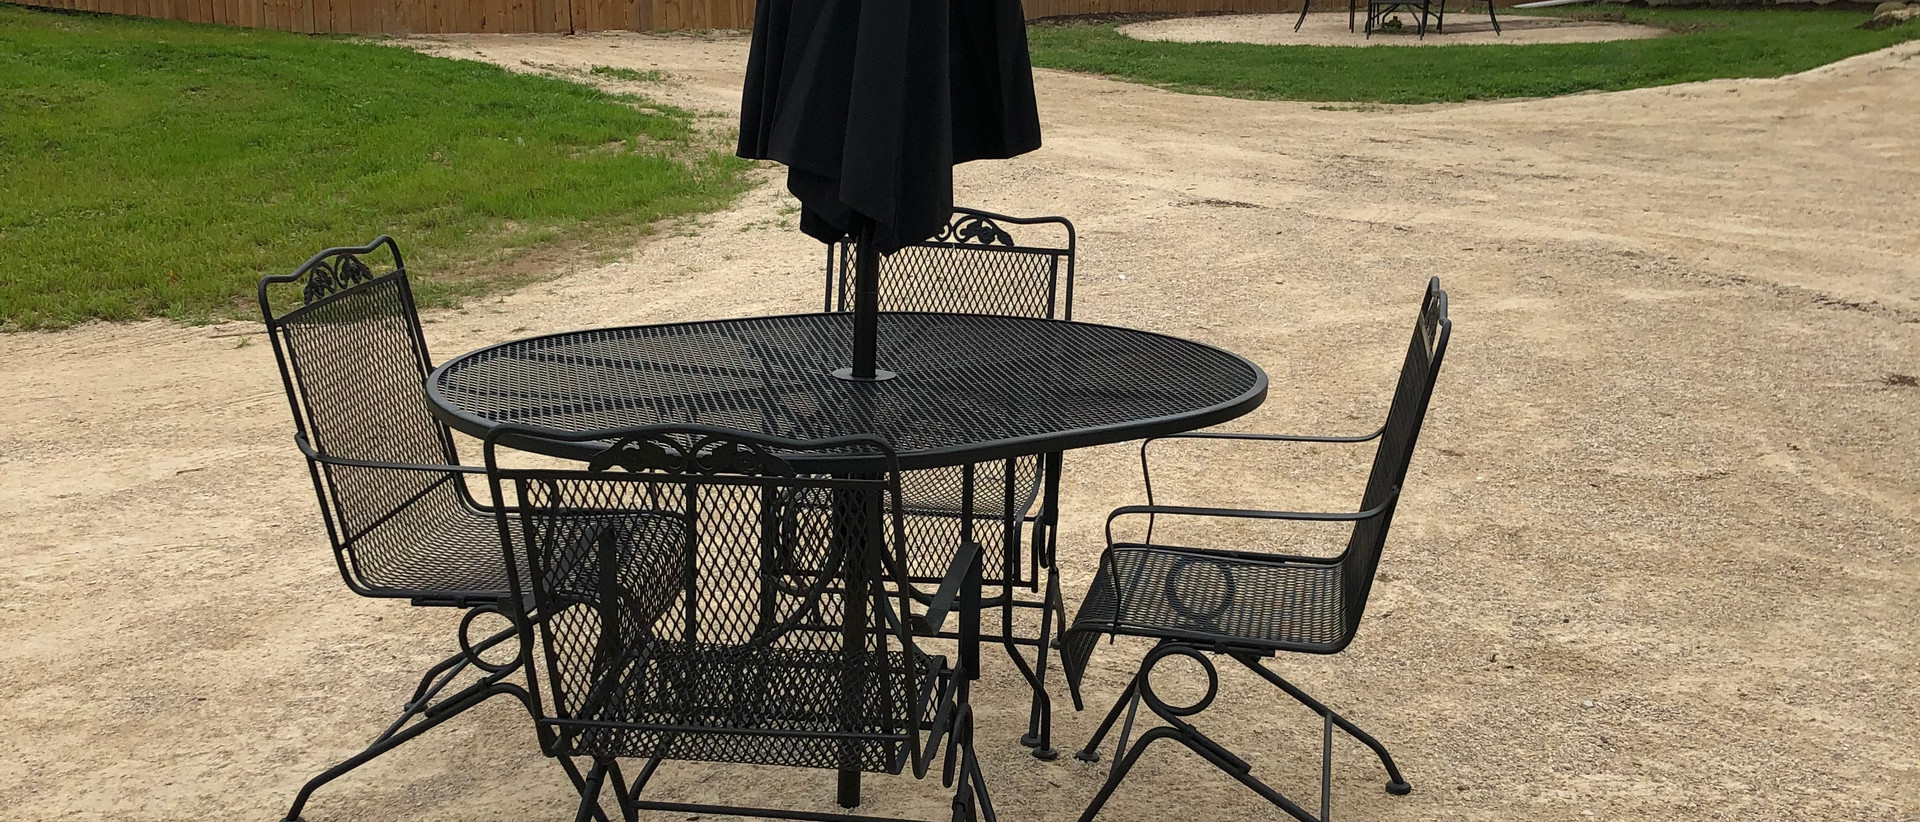 3 black patio tables with solar lit umbrellas